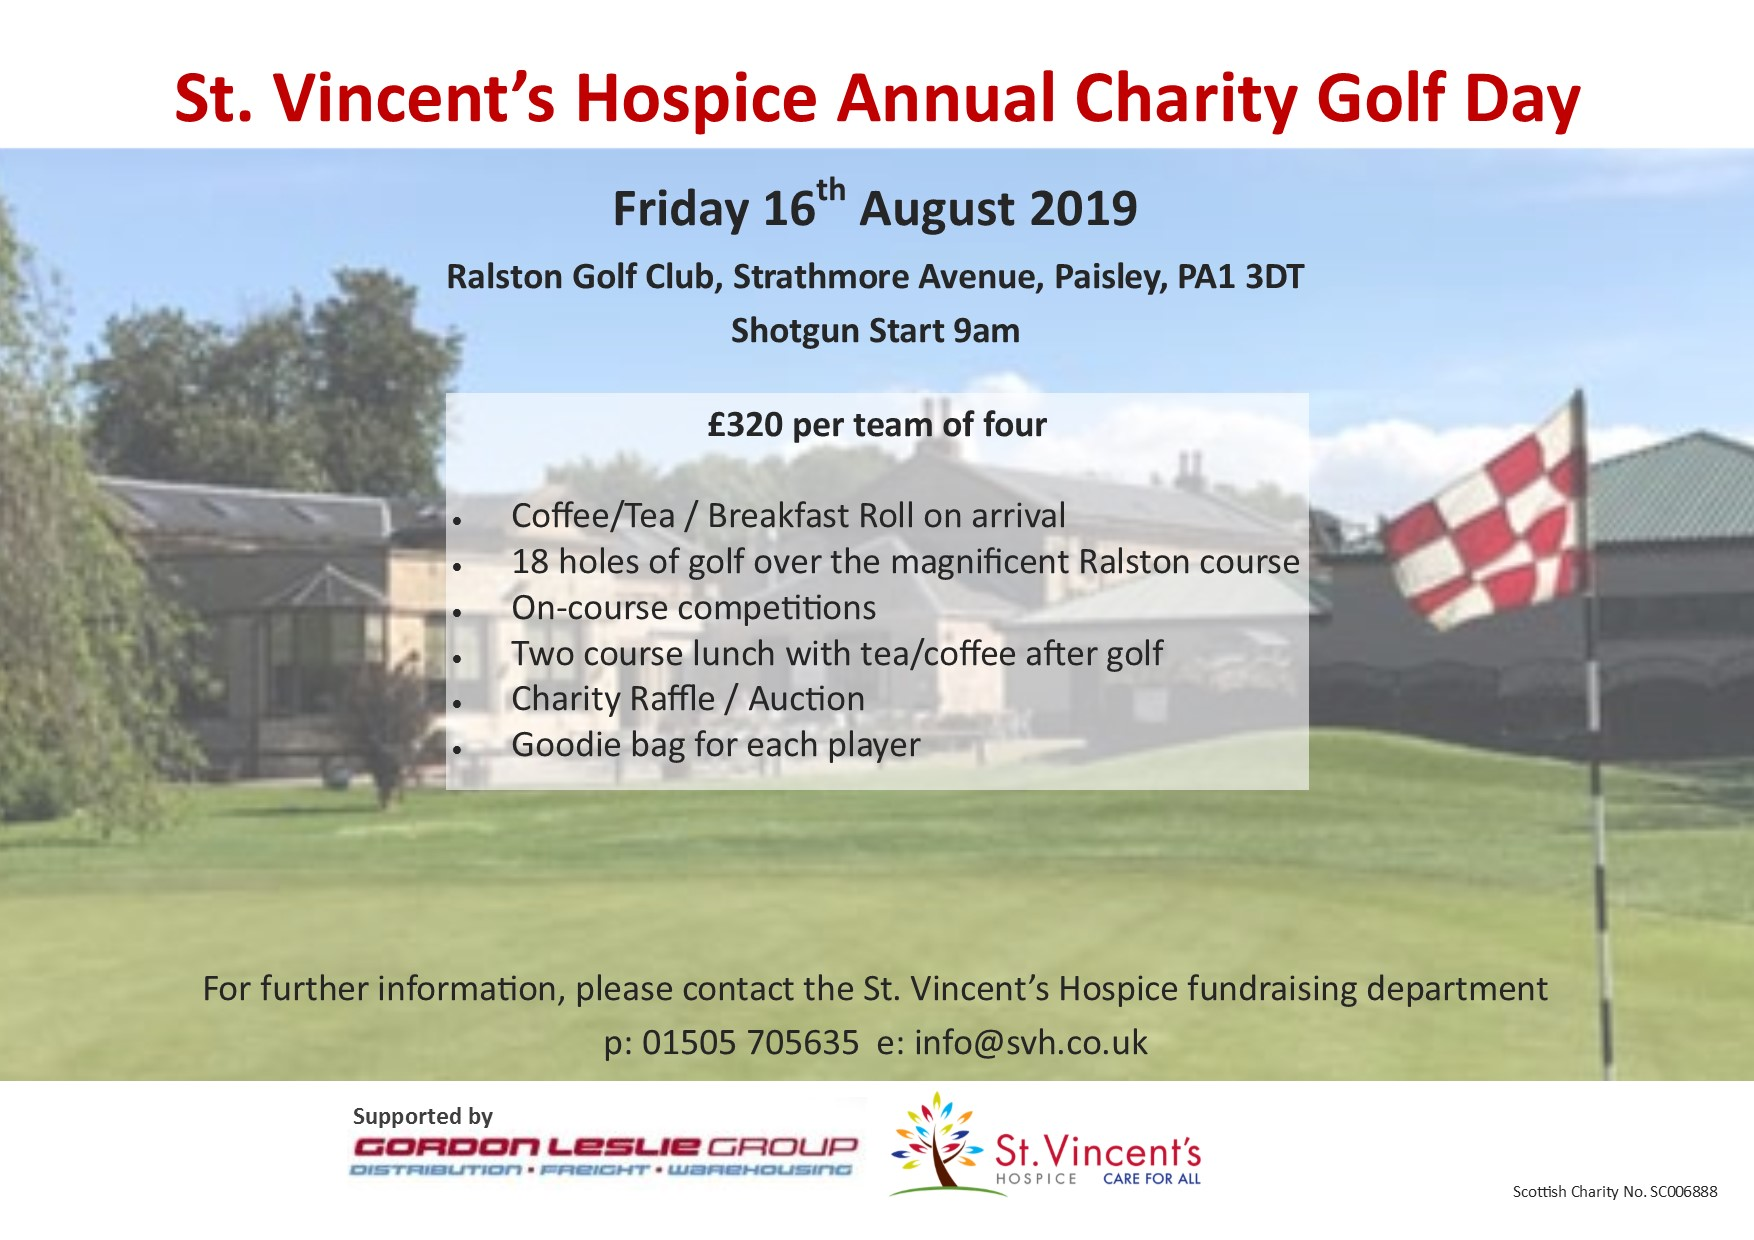 St. Vincent's Hospice Golf Day